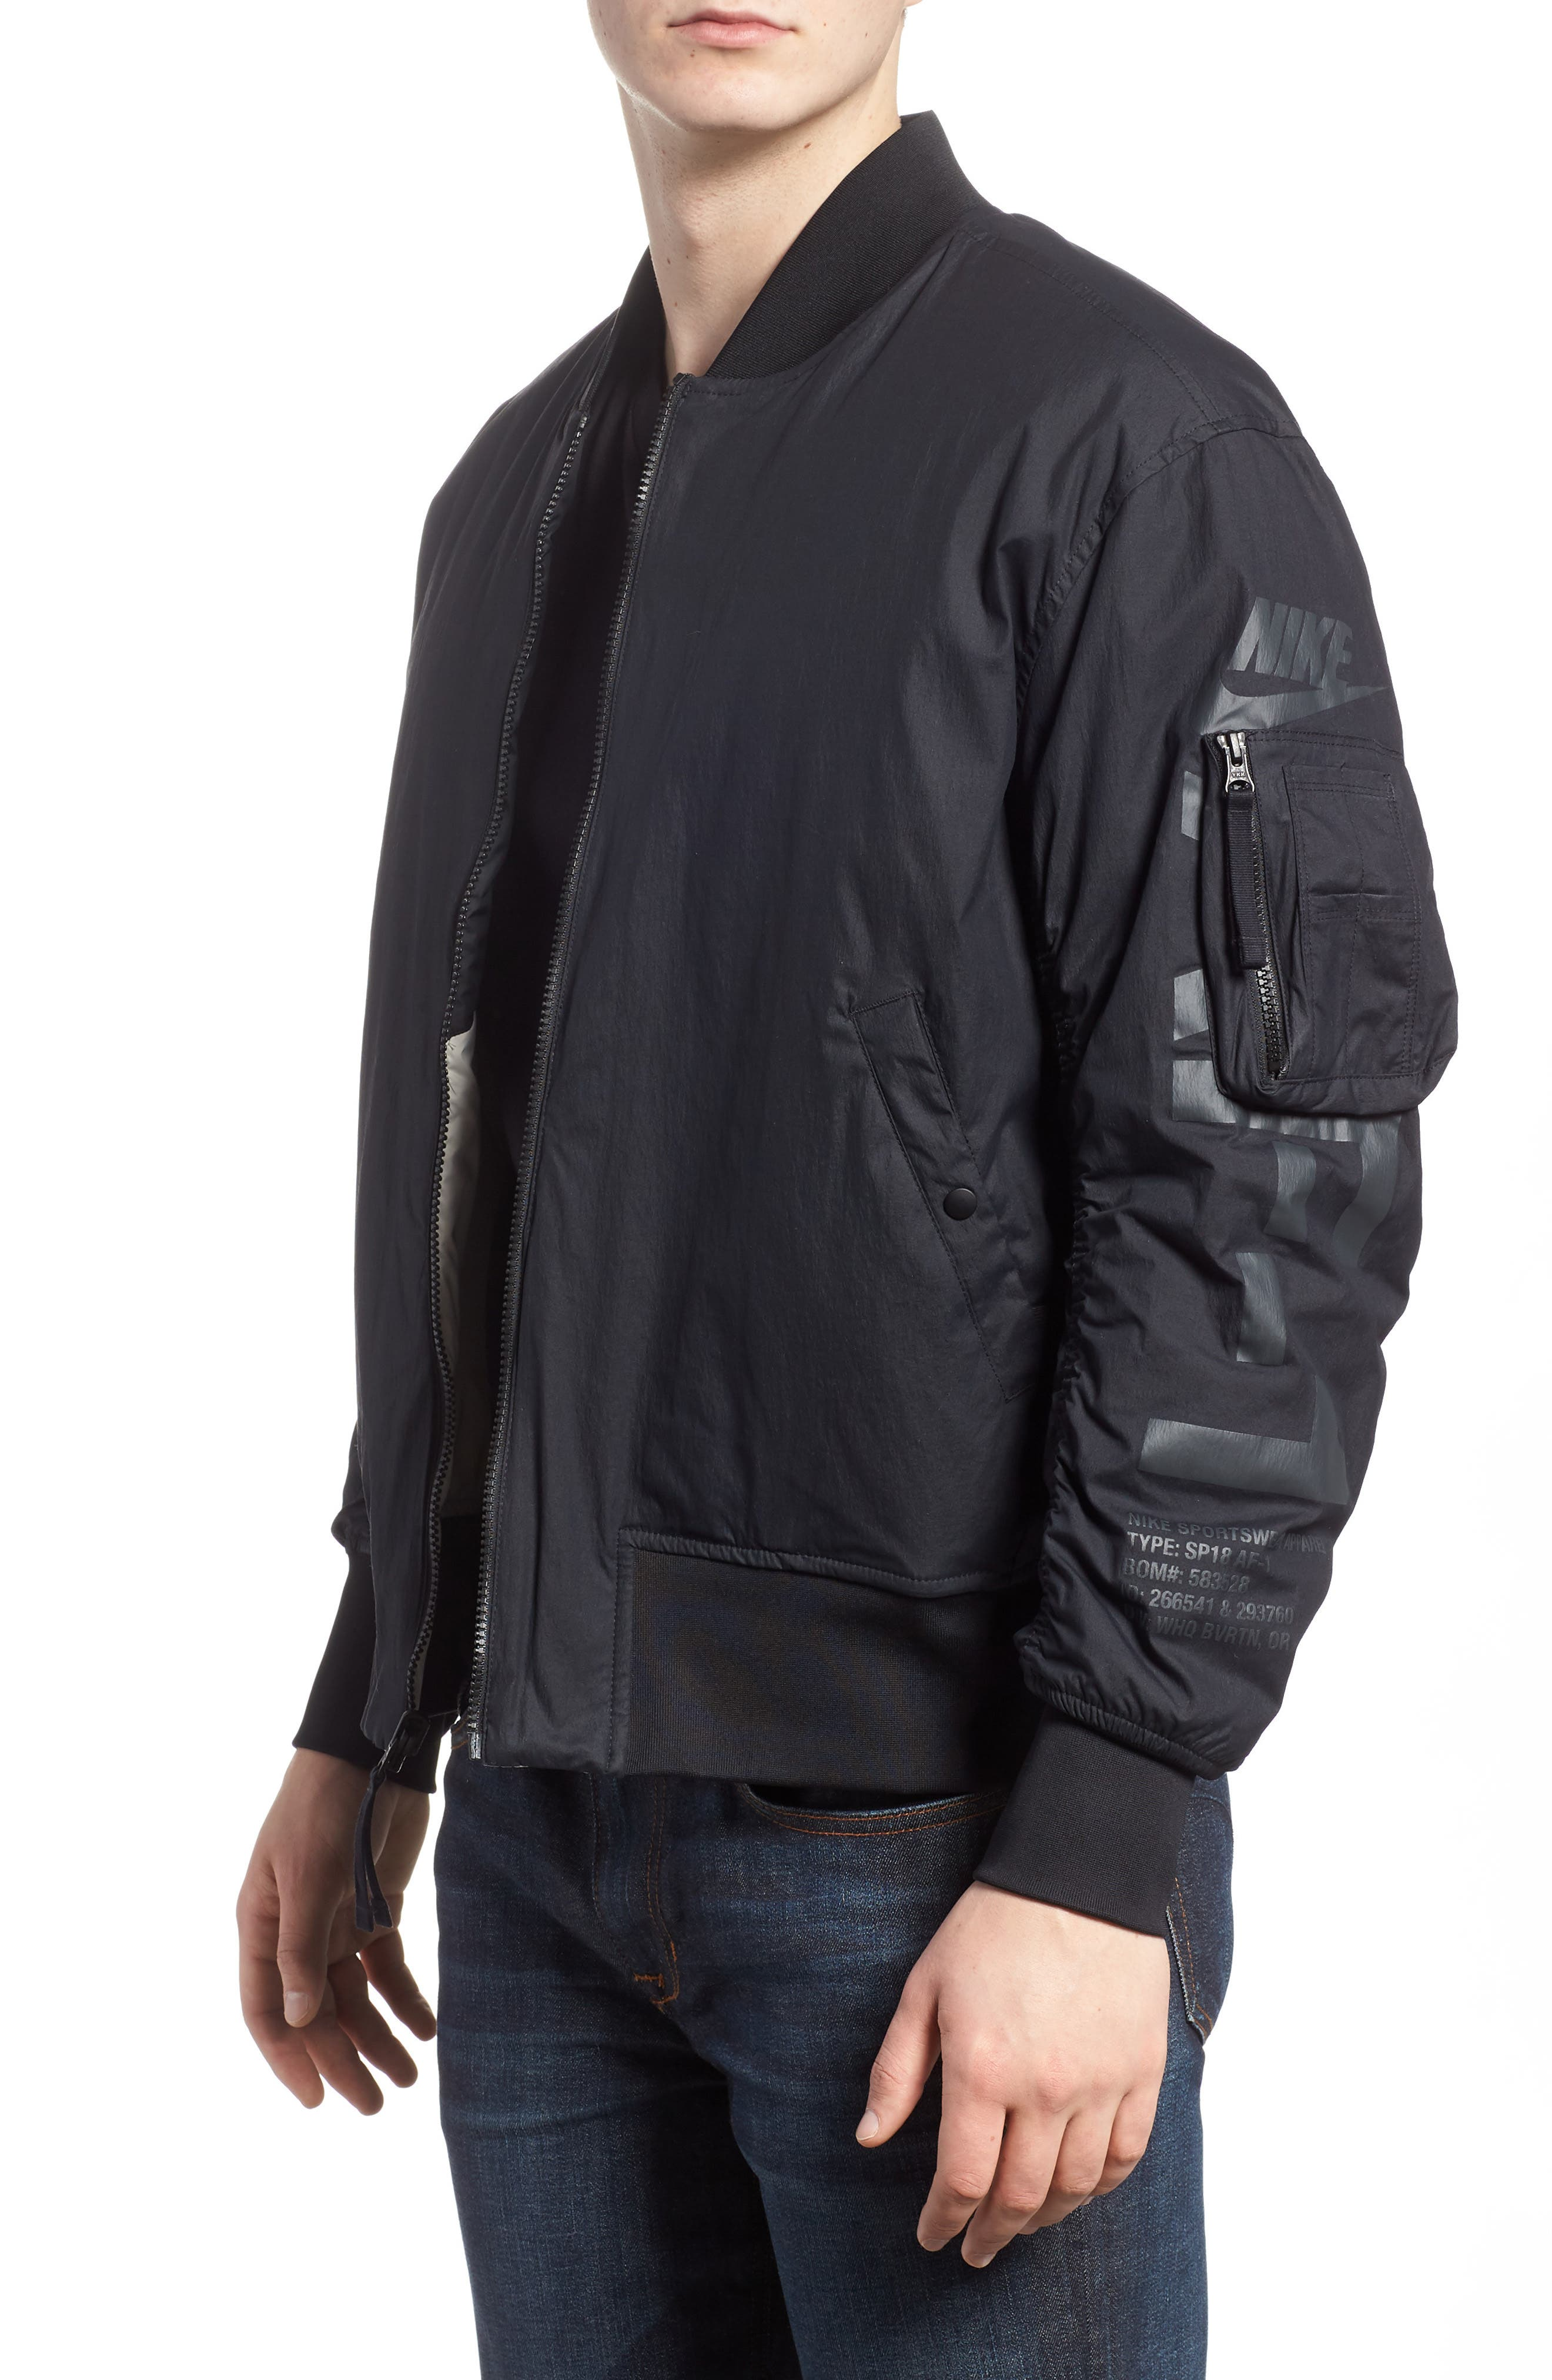 NSW Air Force 1 Jacket,                             Alternate thumbnail 2, color,                             010